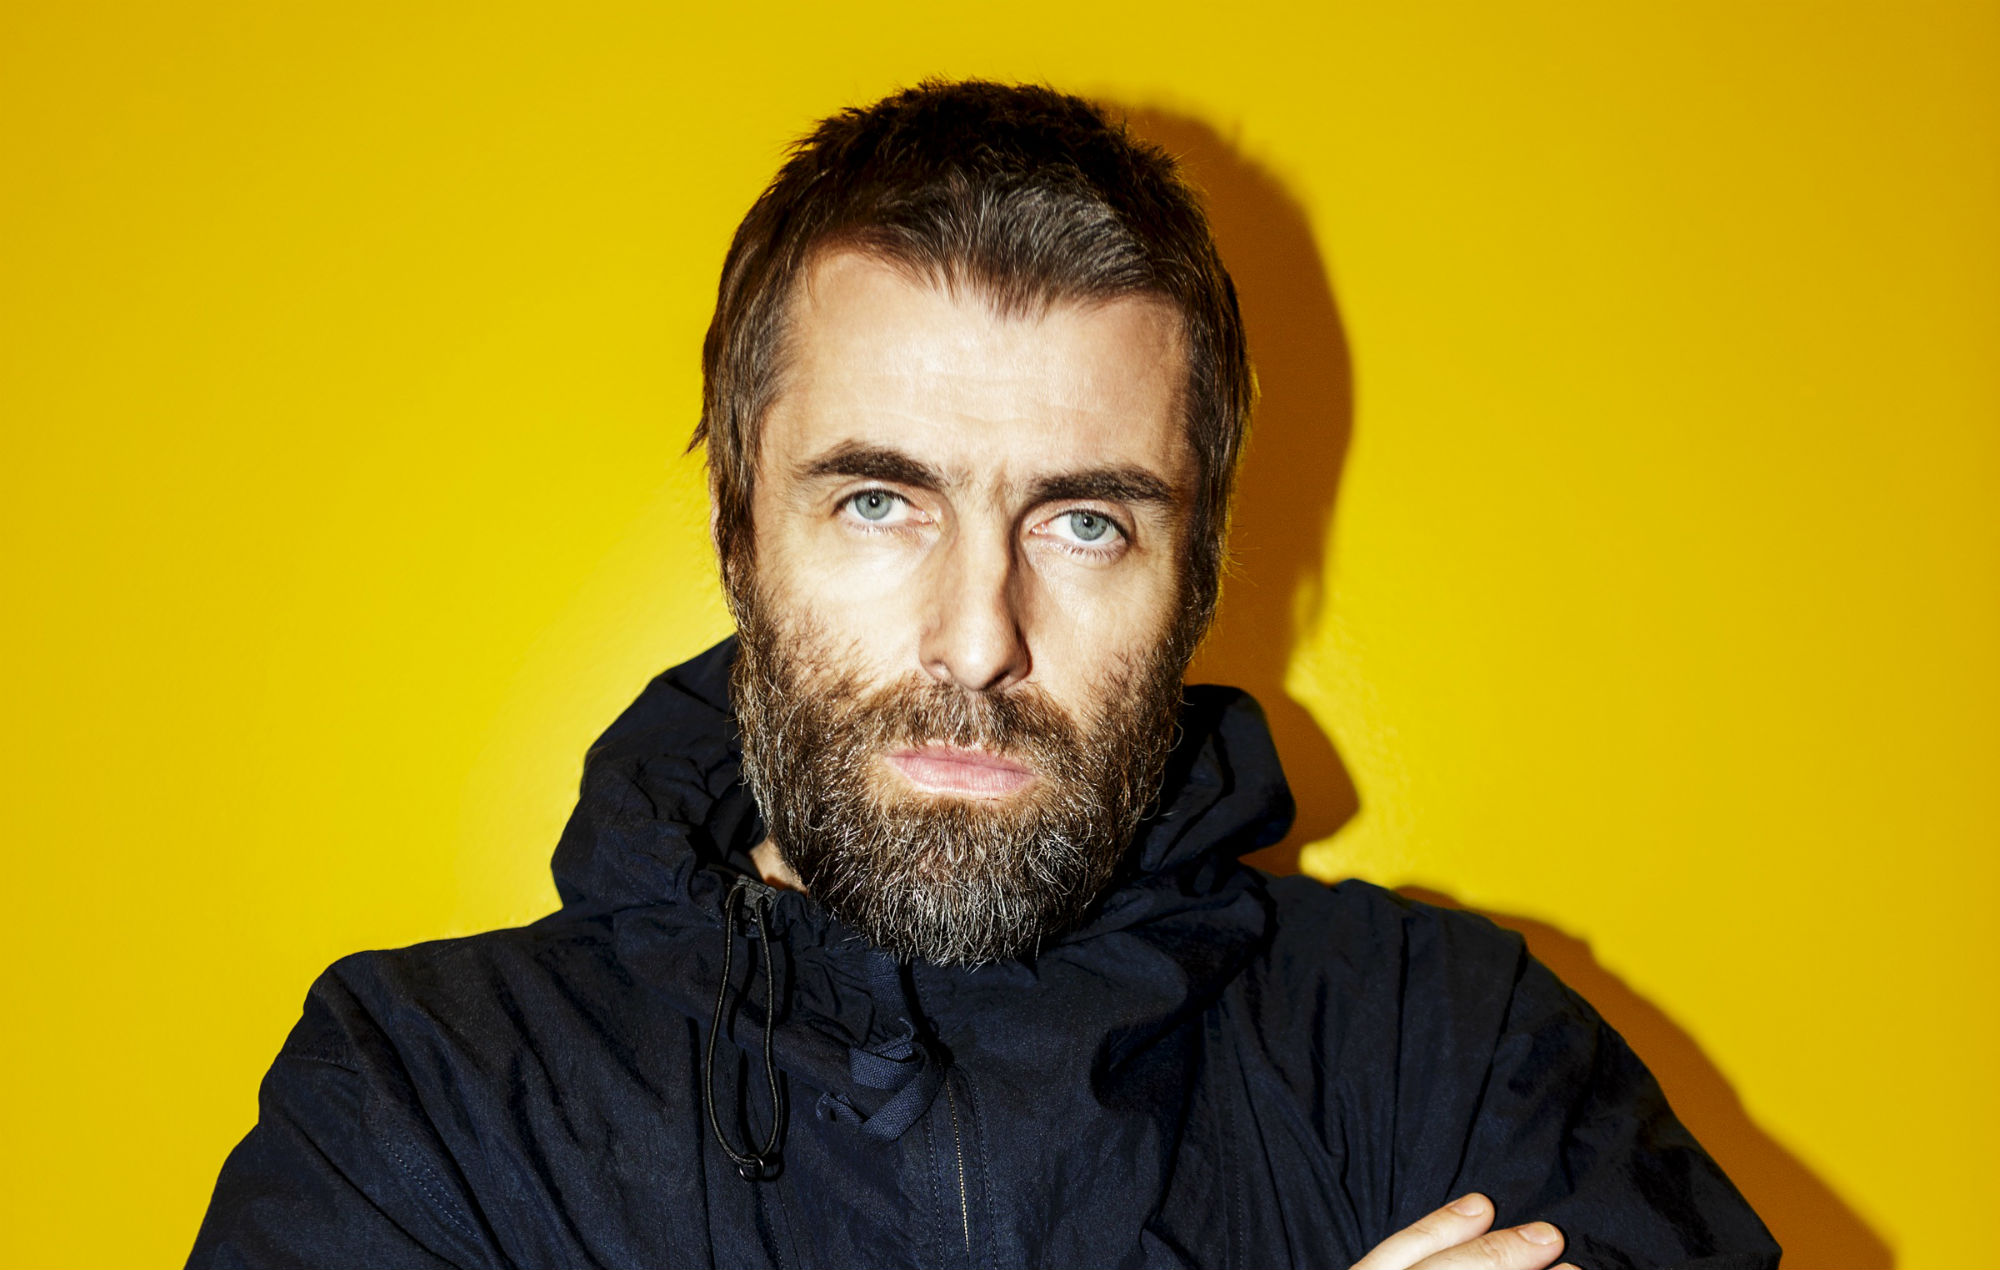 Liam Gallagher's new song 'All You're Dreaming Of' review: a festive ballad